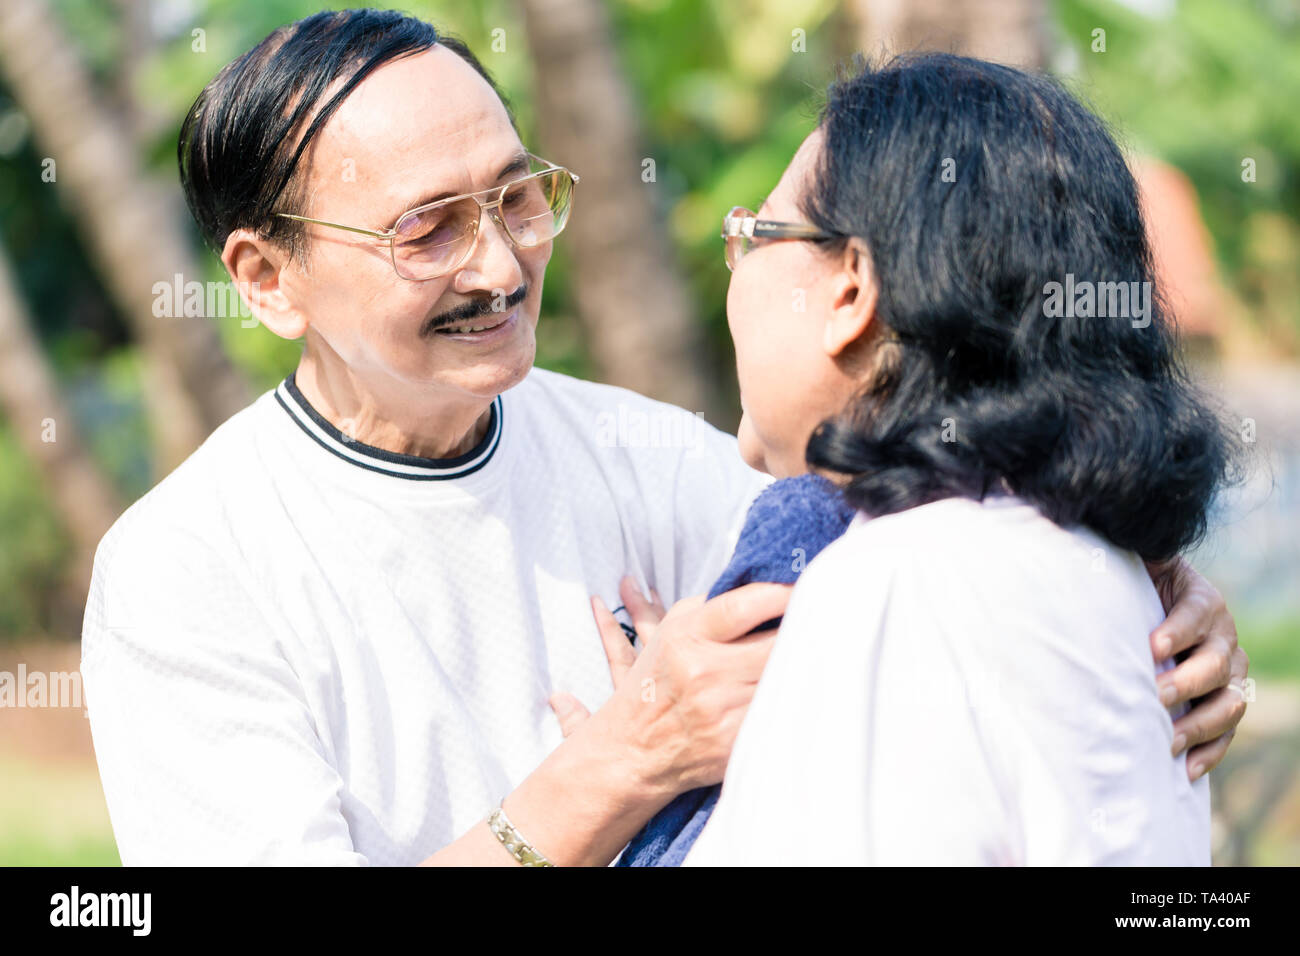 Man wiping sweat of her wife with napkin - Stock Image